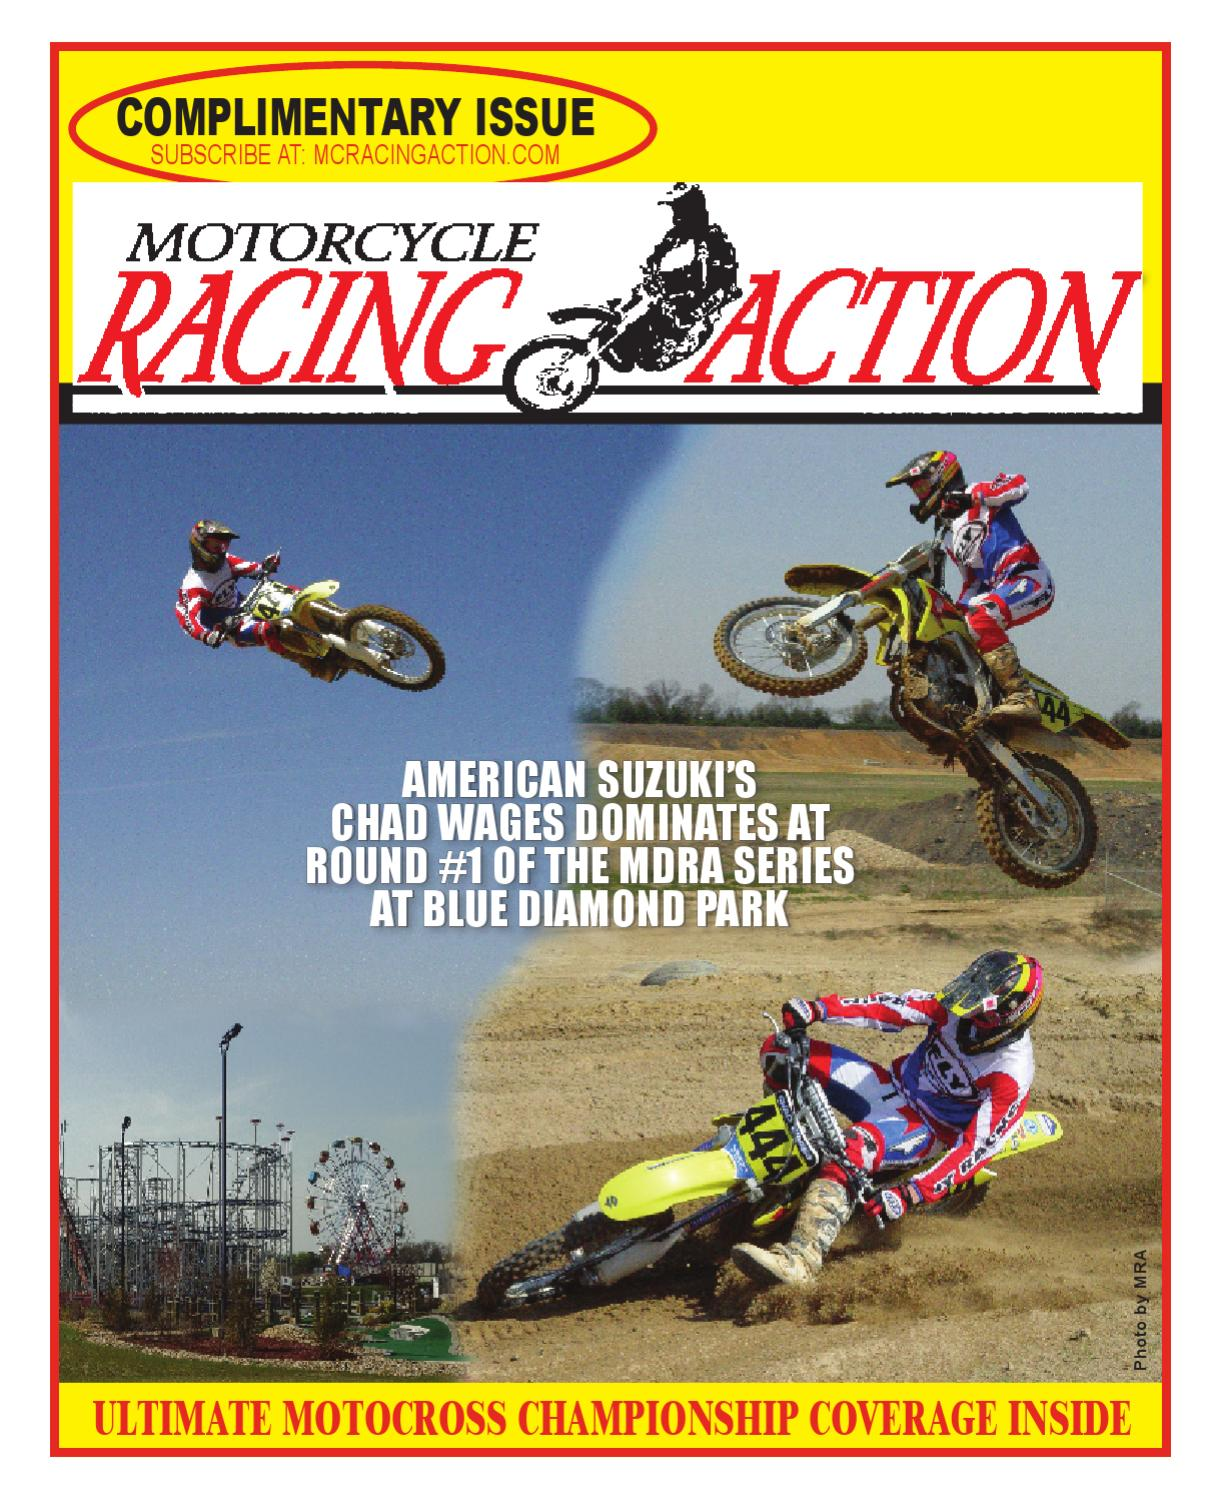 mra may 2005 by motorcycle racing action issuu